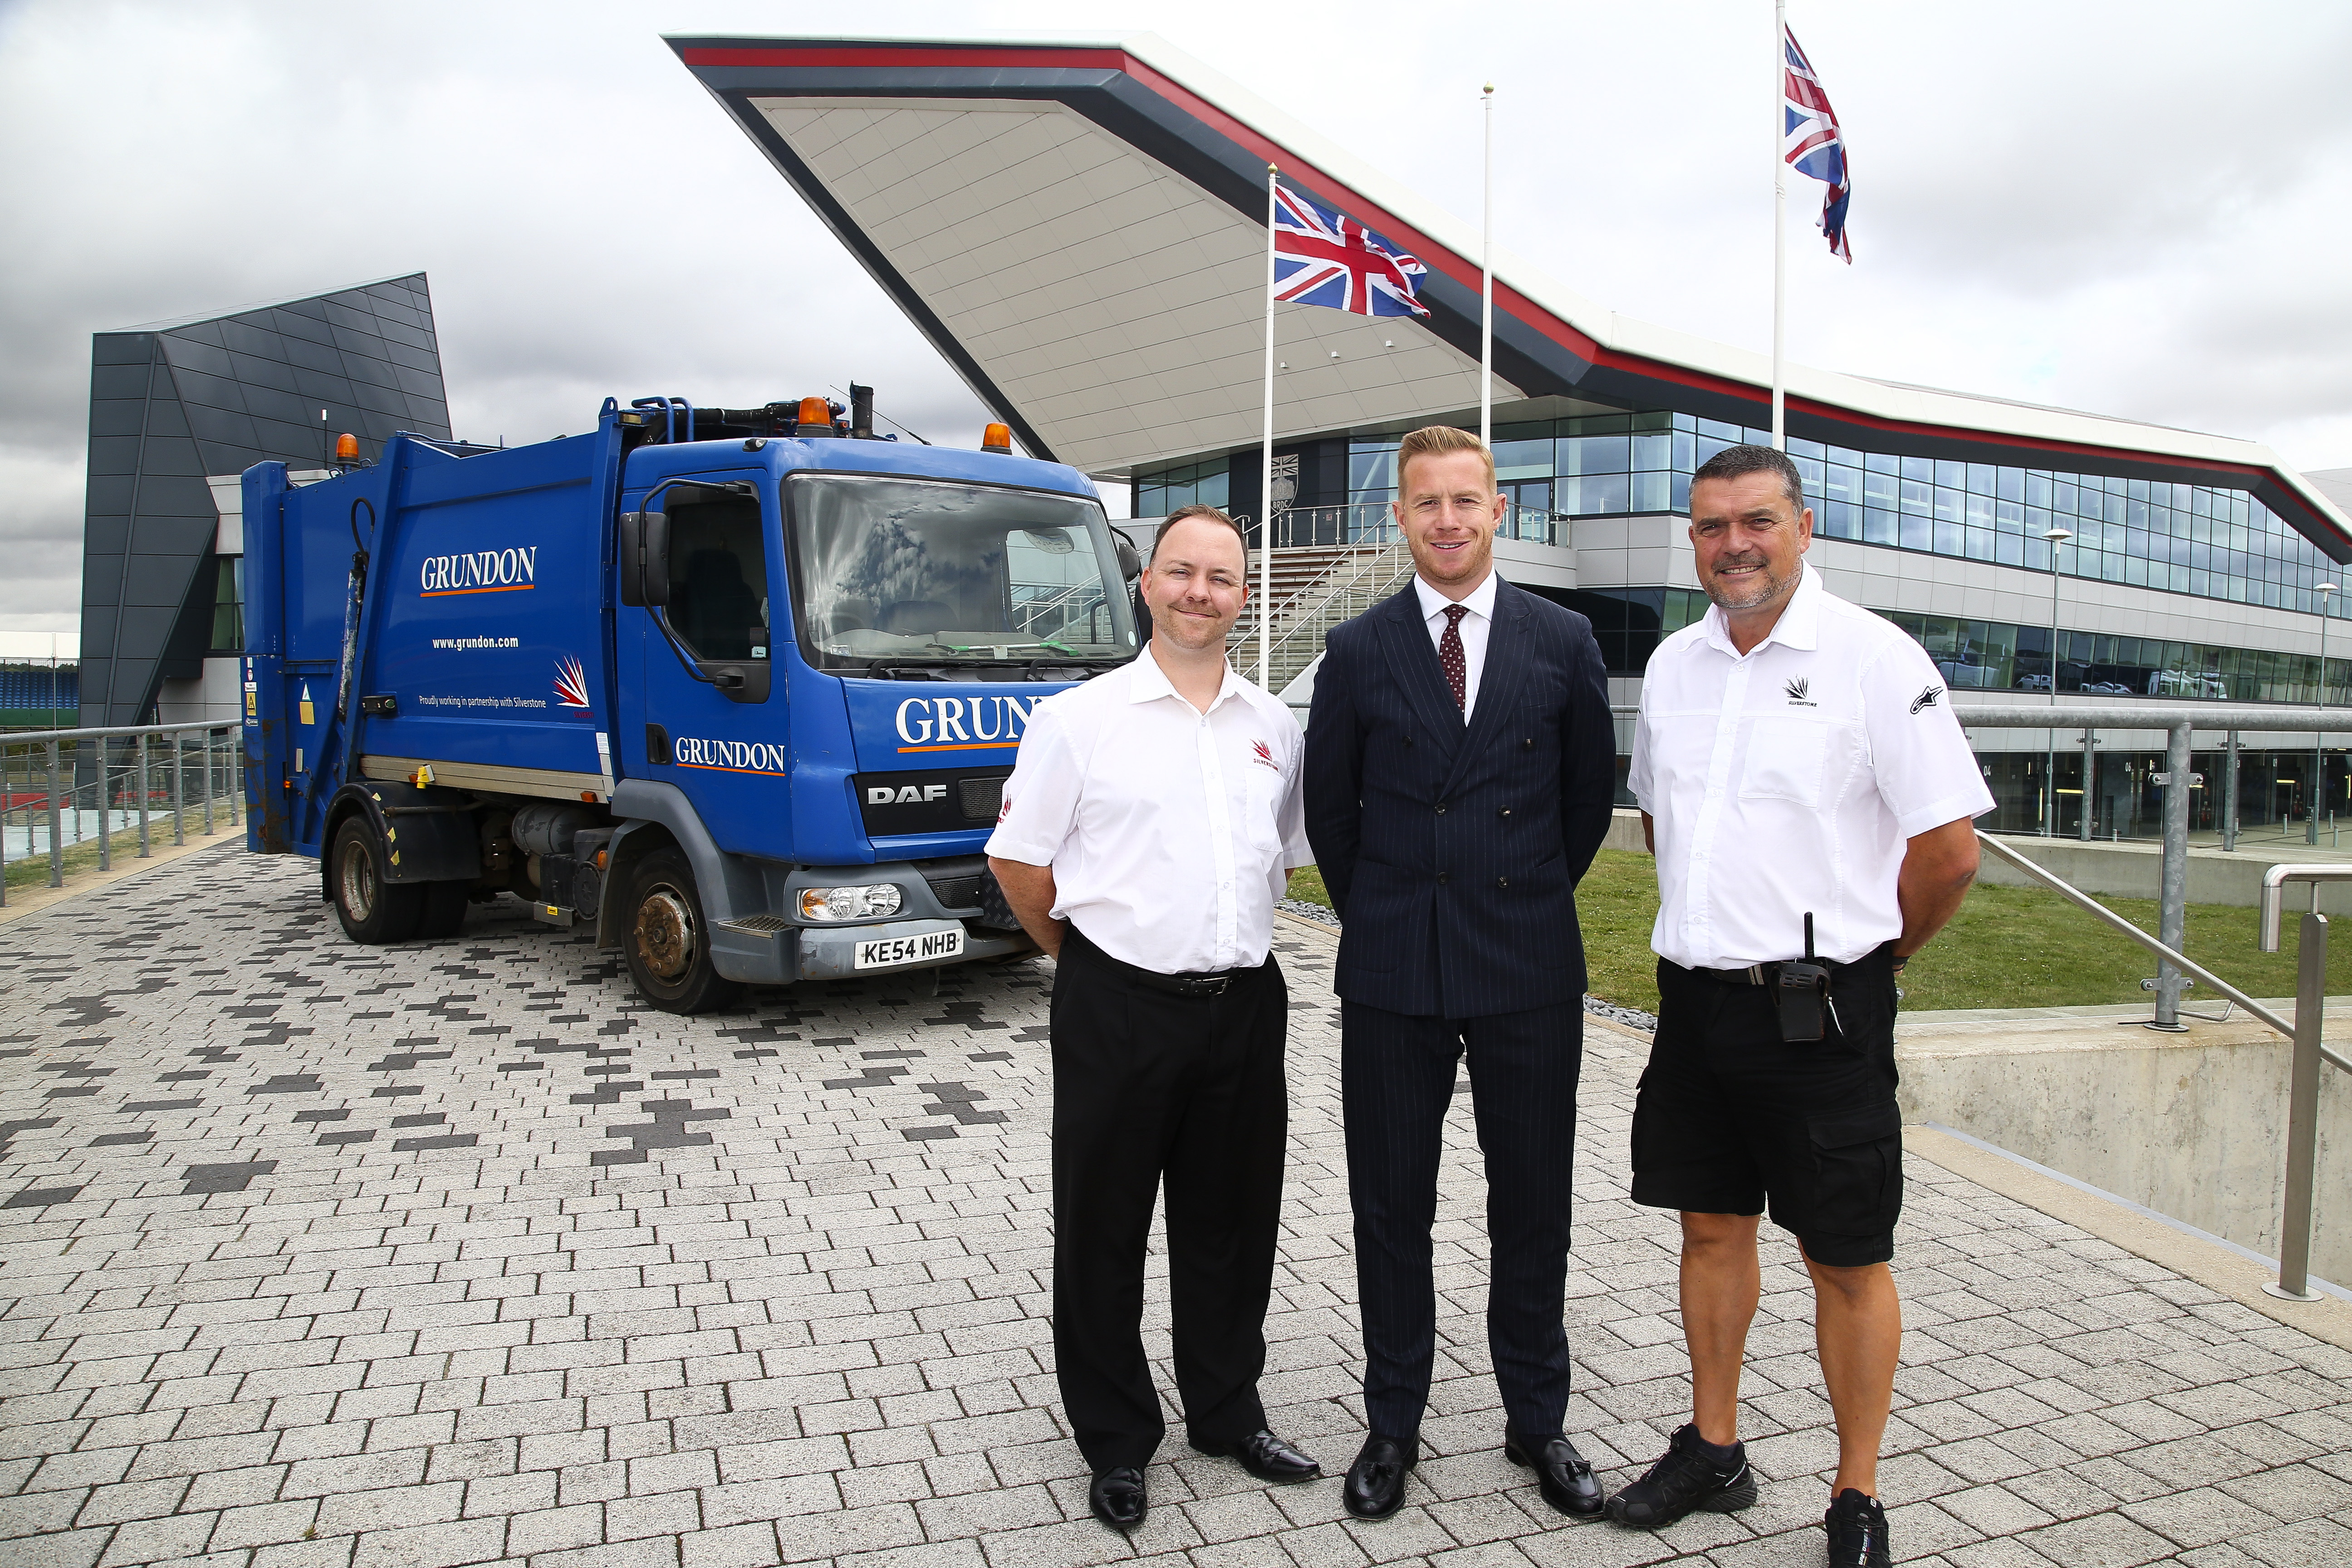 Grundon's Stephen Hill, centre, with Silverstone's Lee Thomas (left) and Lee Howkins